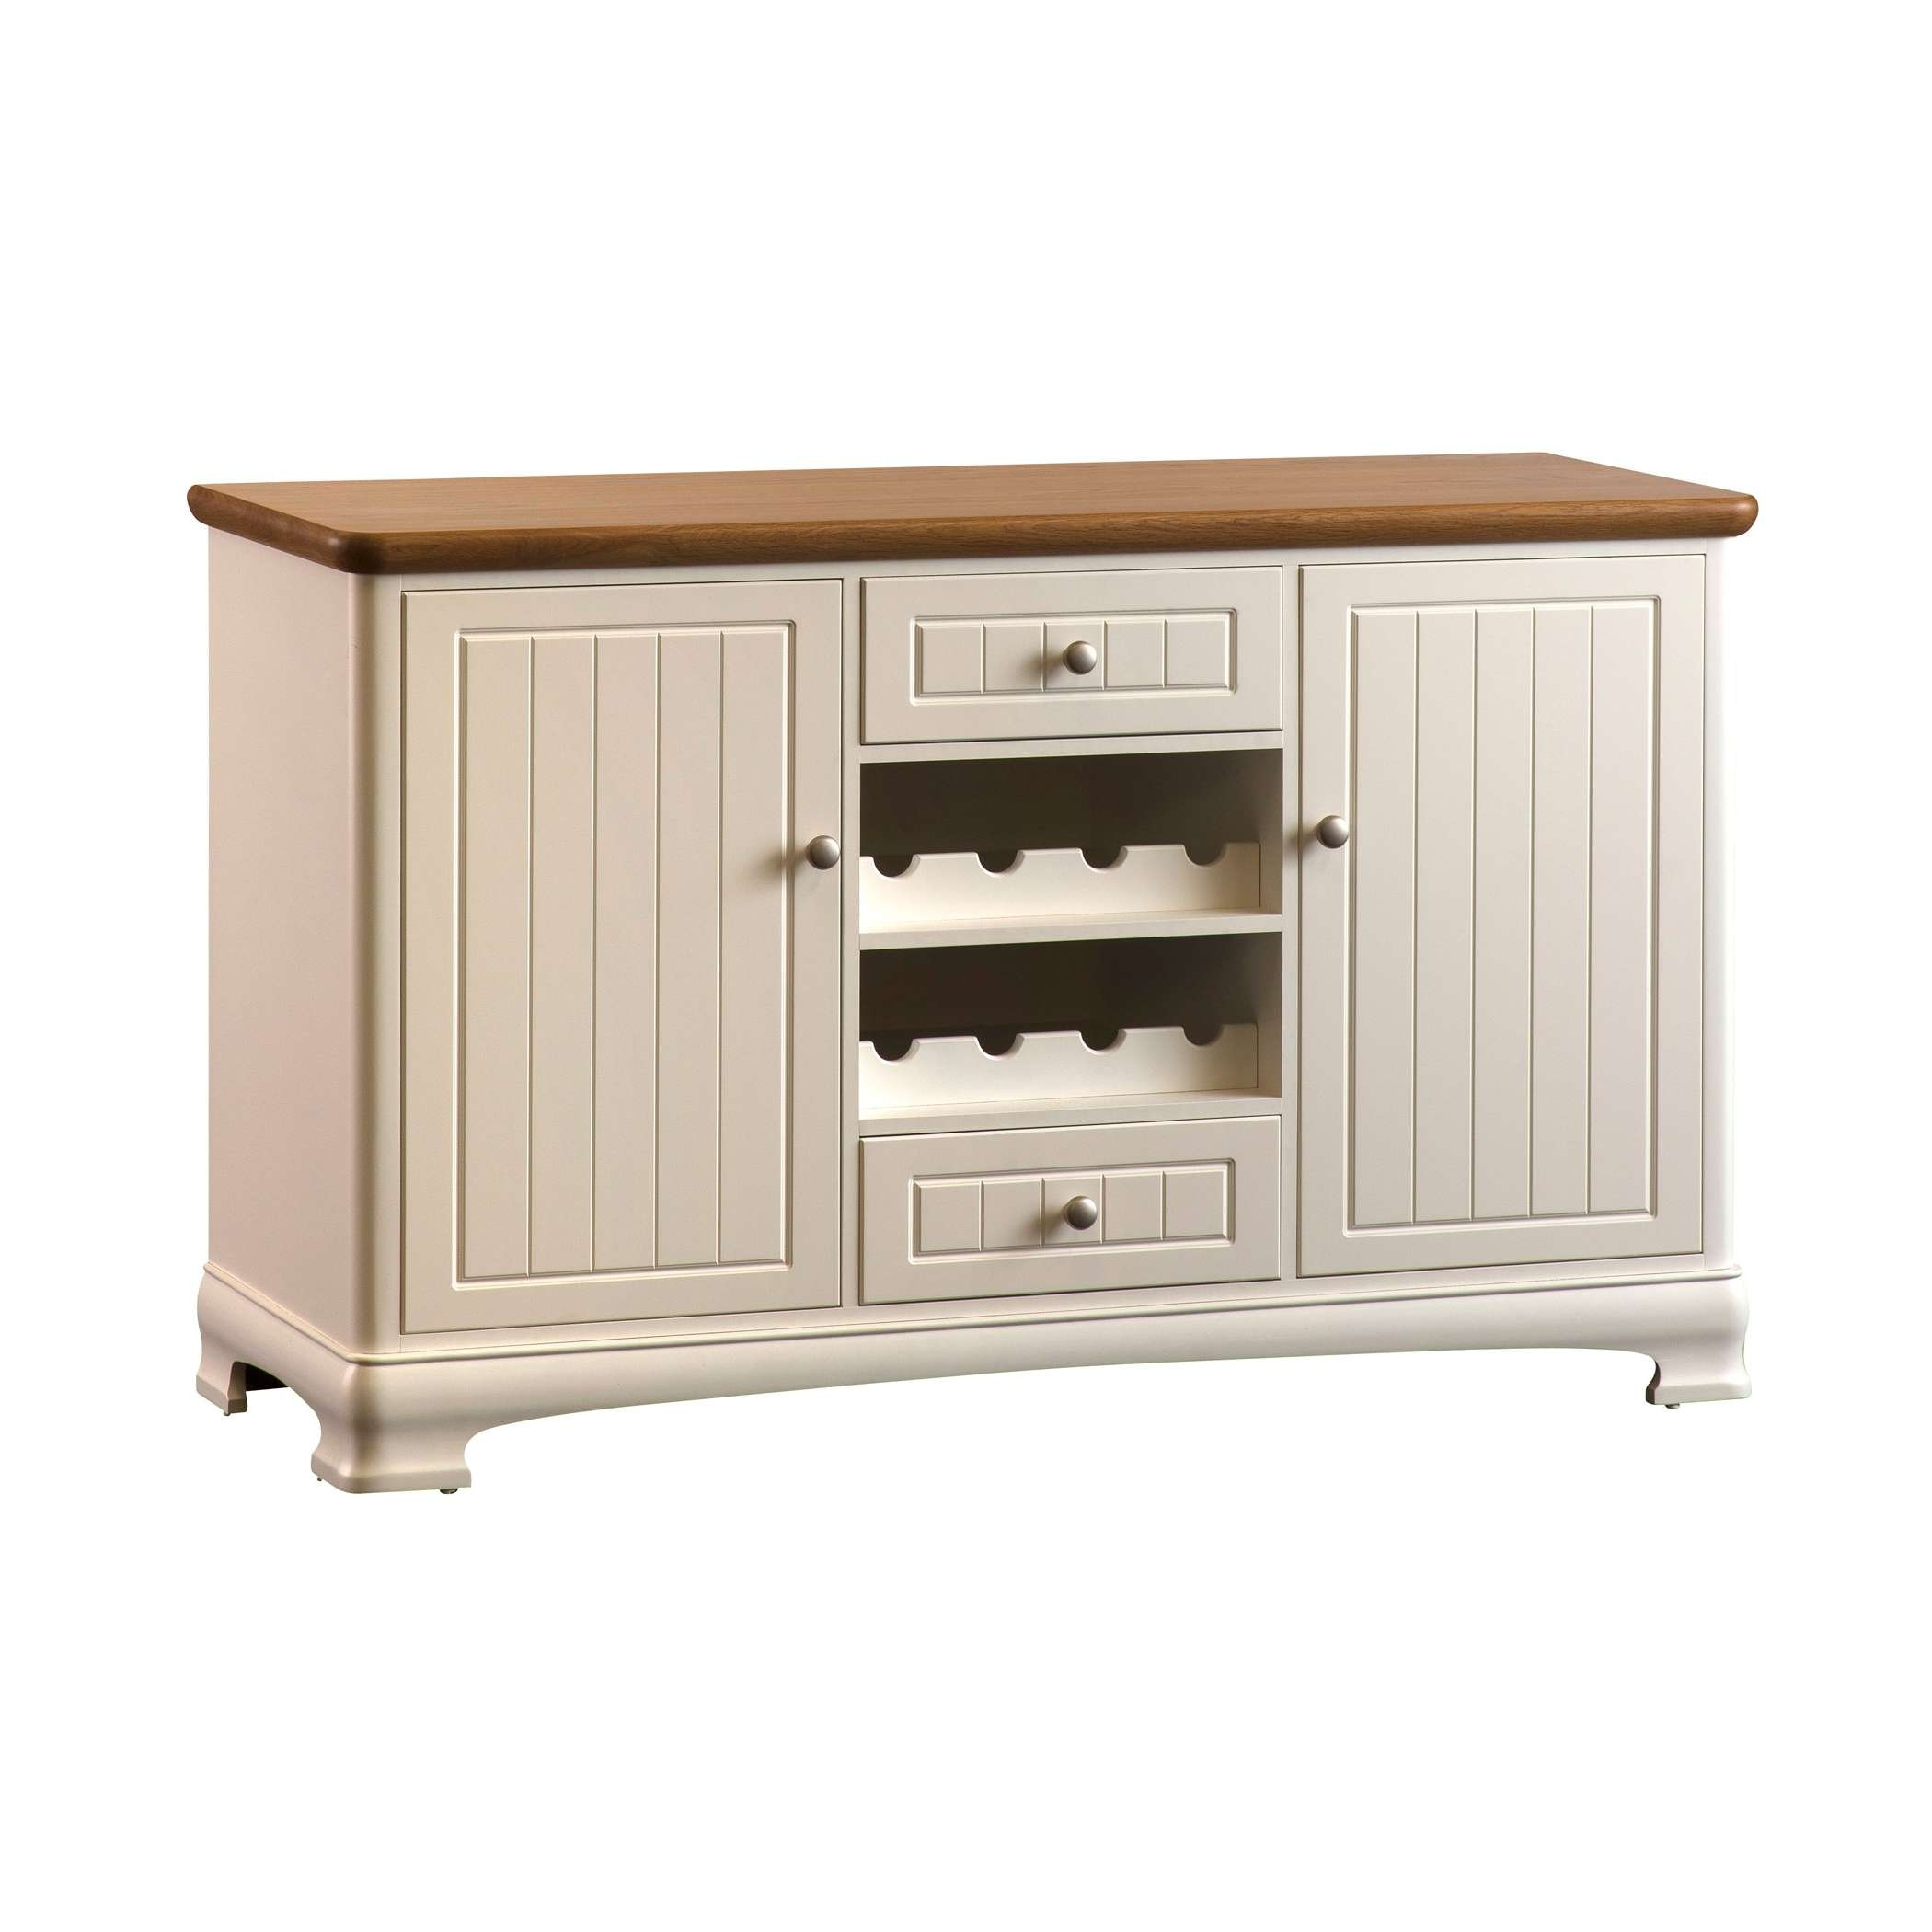 Painted Large Sideboard With Wine Rack | Gola Furniture Uk Inside Sideboards With Wine Rack (View 4 of 20)